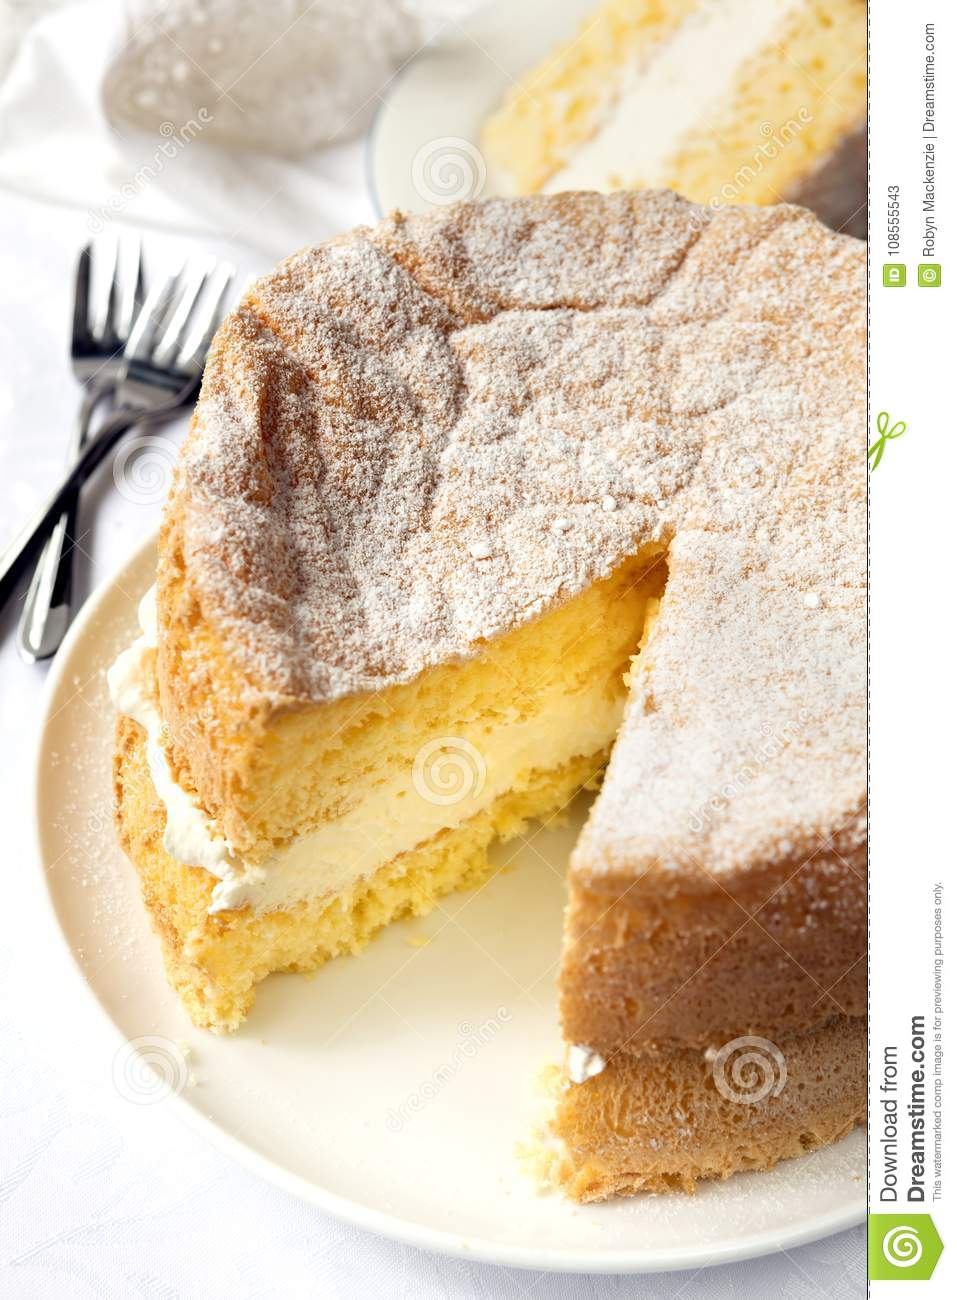 Cream Sponge Cake with Slice Cut out for Serving